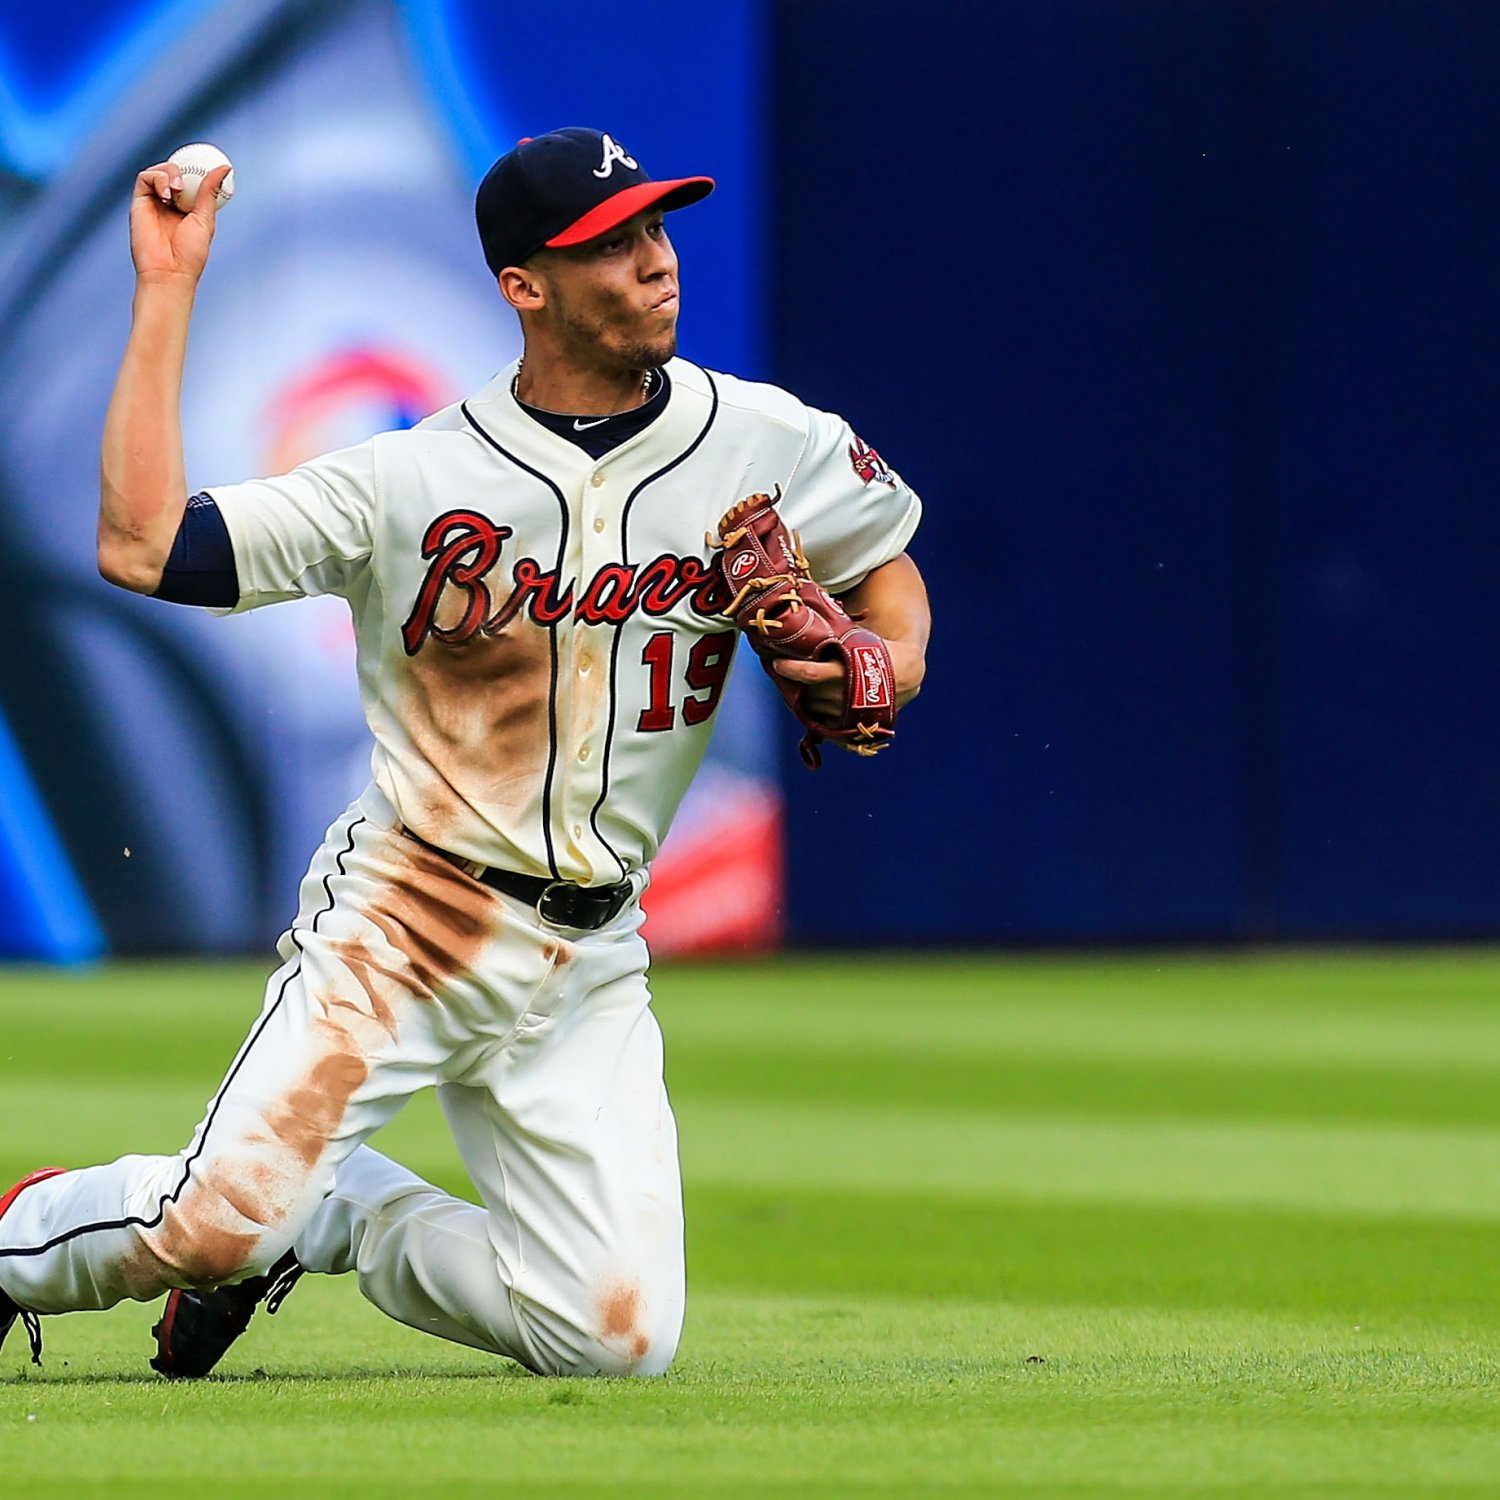 hi-res-182302996-andrelton-simmons-of-th